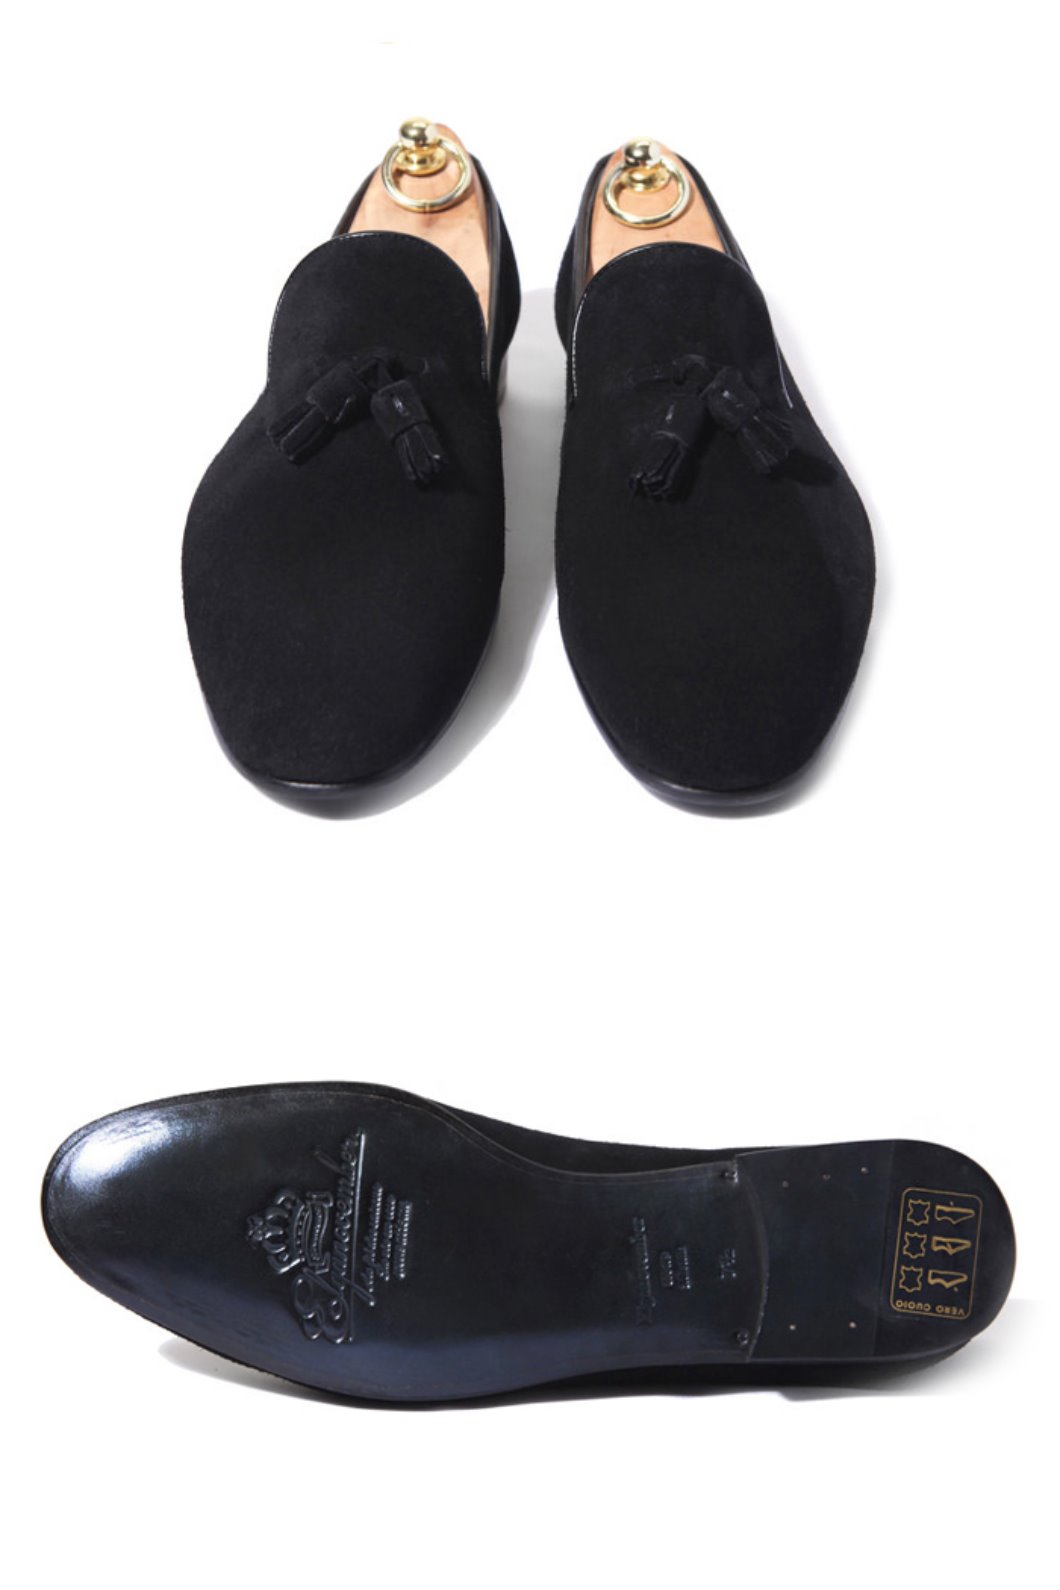 Take344 artisan slipper suede shoes/black할인인벤트!